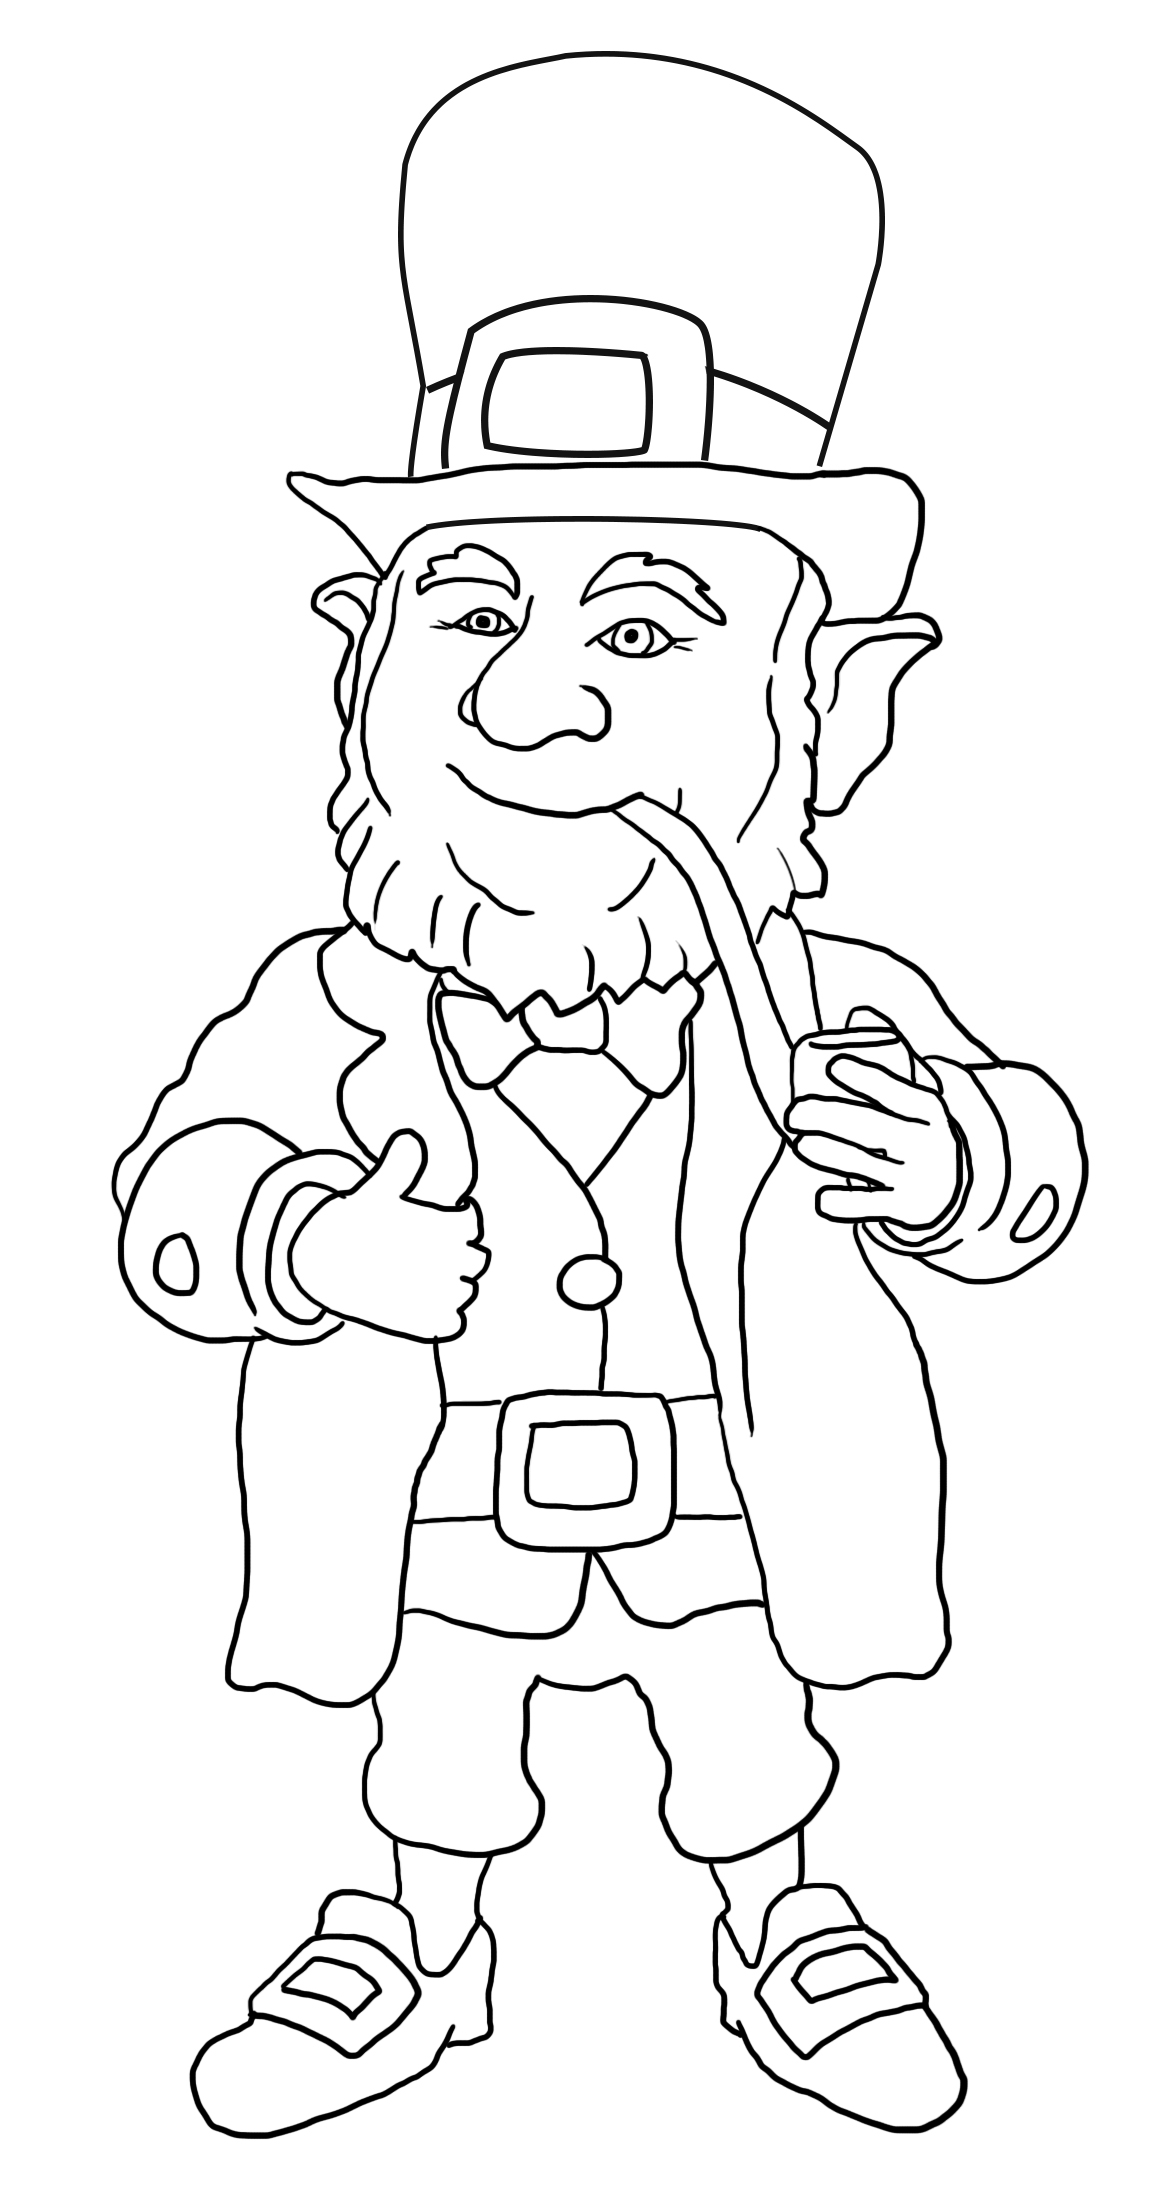 funny Irish leprechaun for coloring